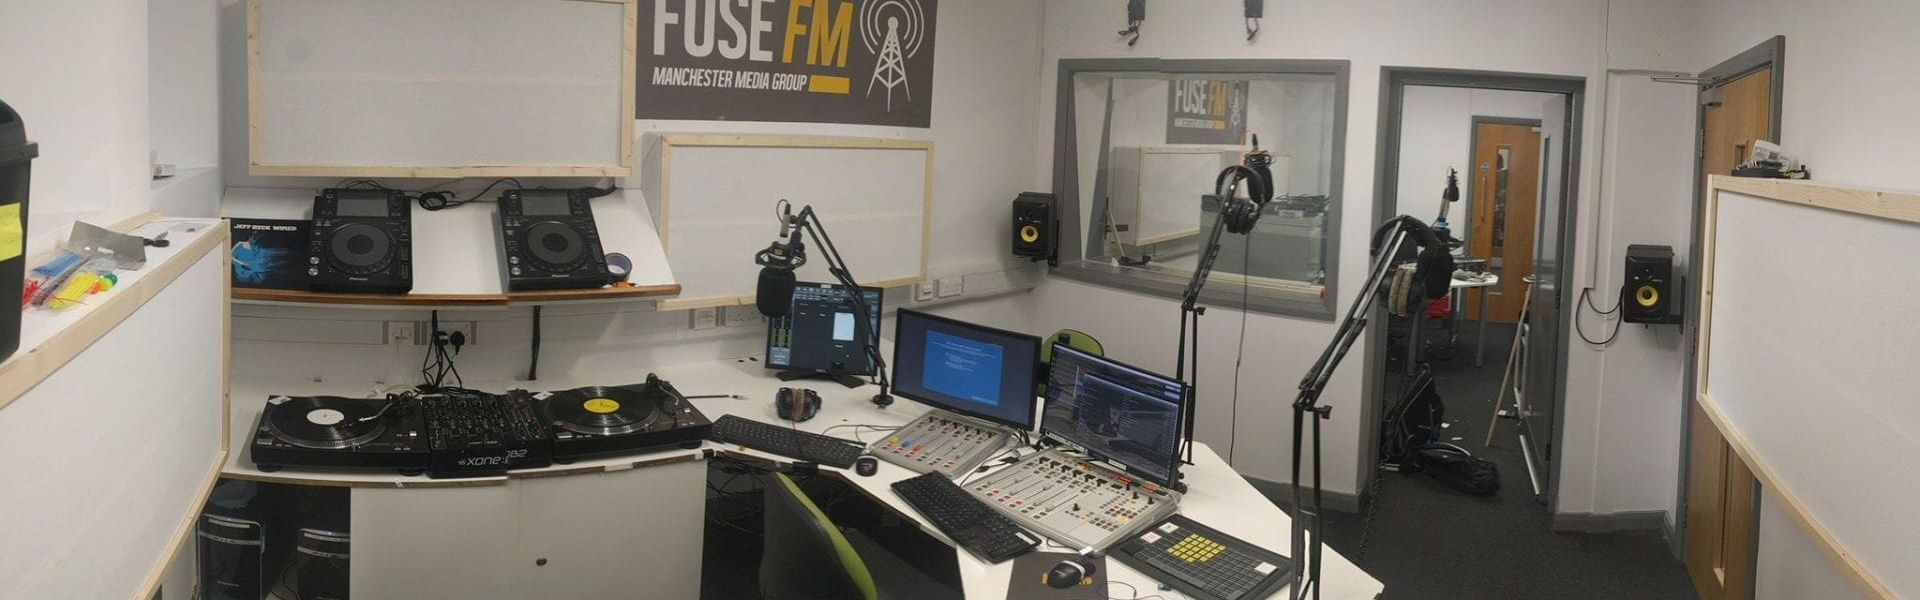 Welcome to Fuse FM